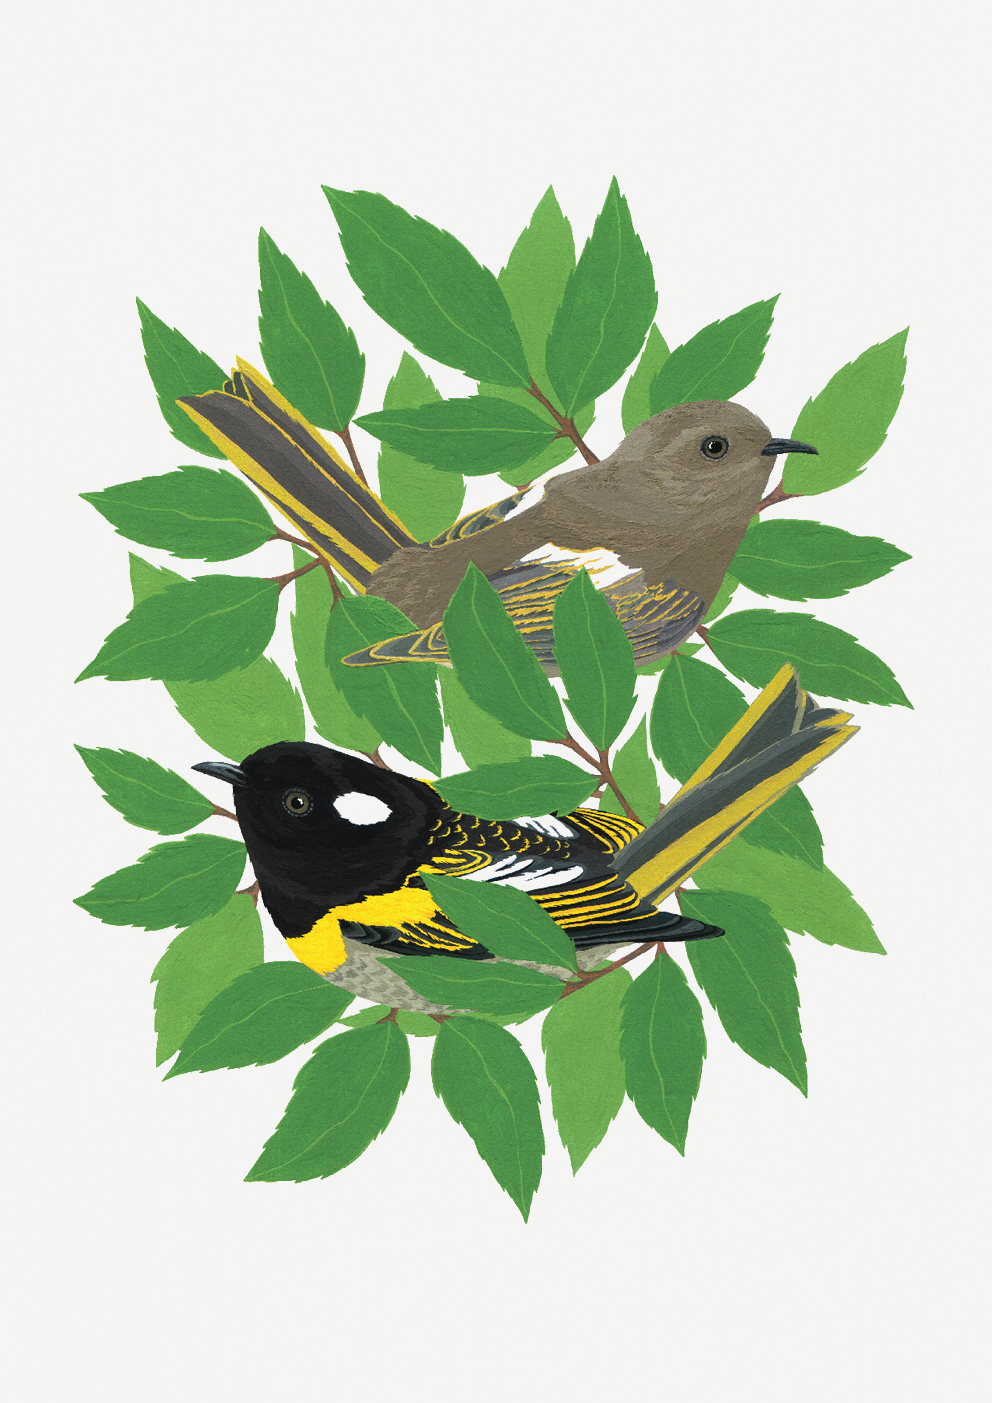 An illustration of two hihi/stichbird by illustrator @ Melissa Boardman.